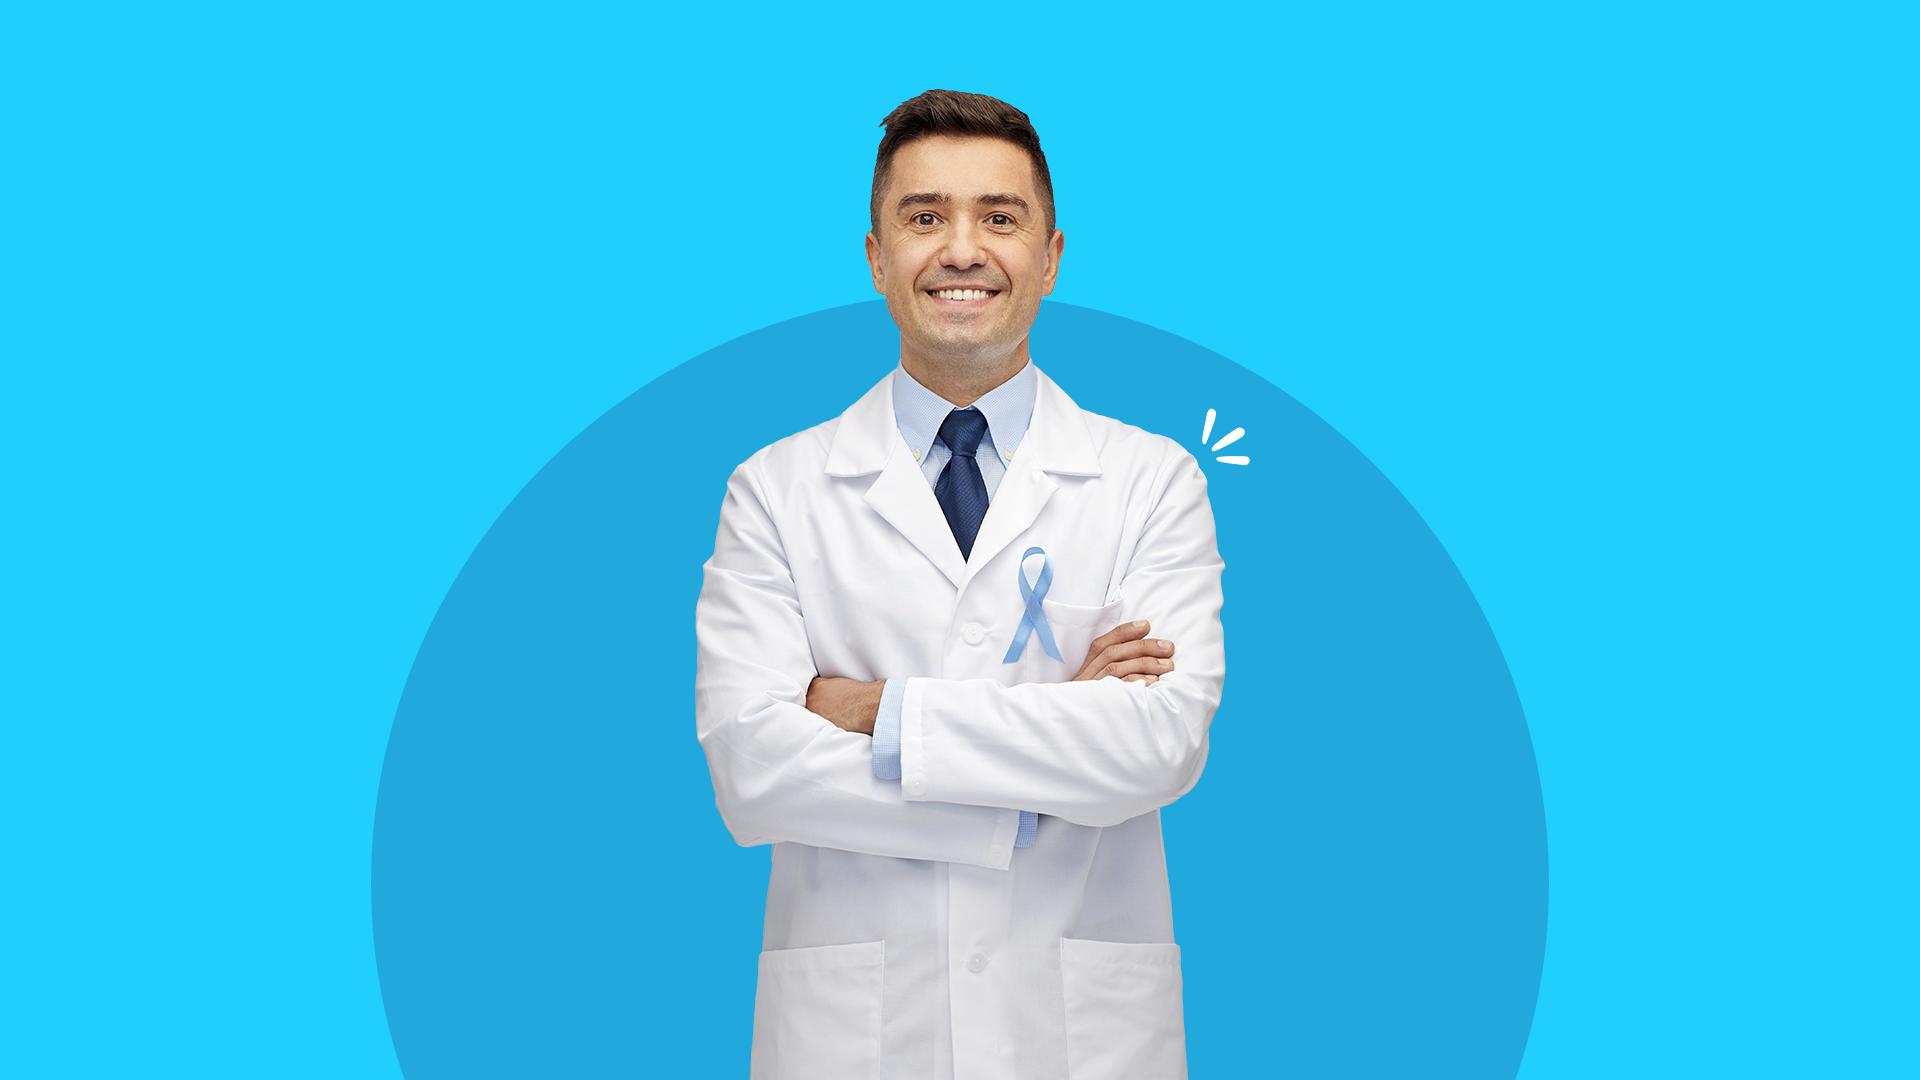 The cancer screenings men need